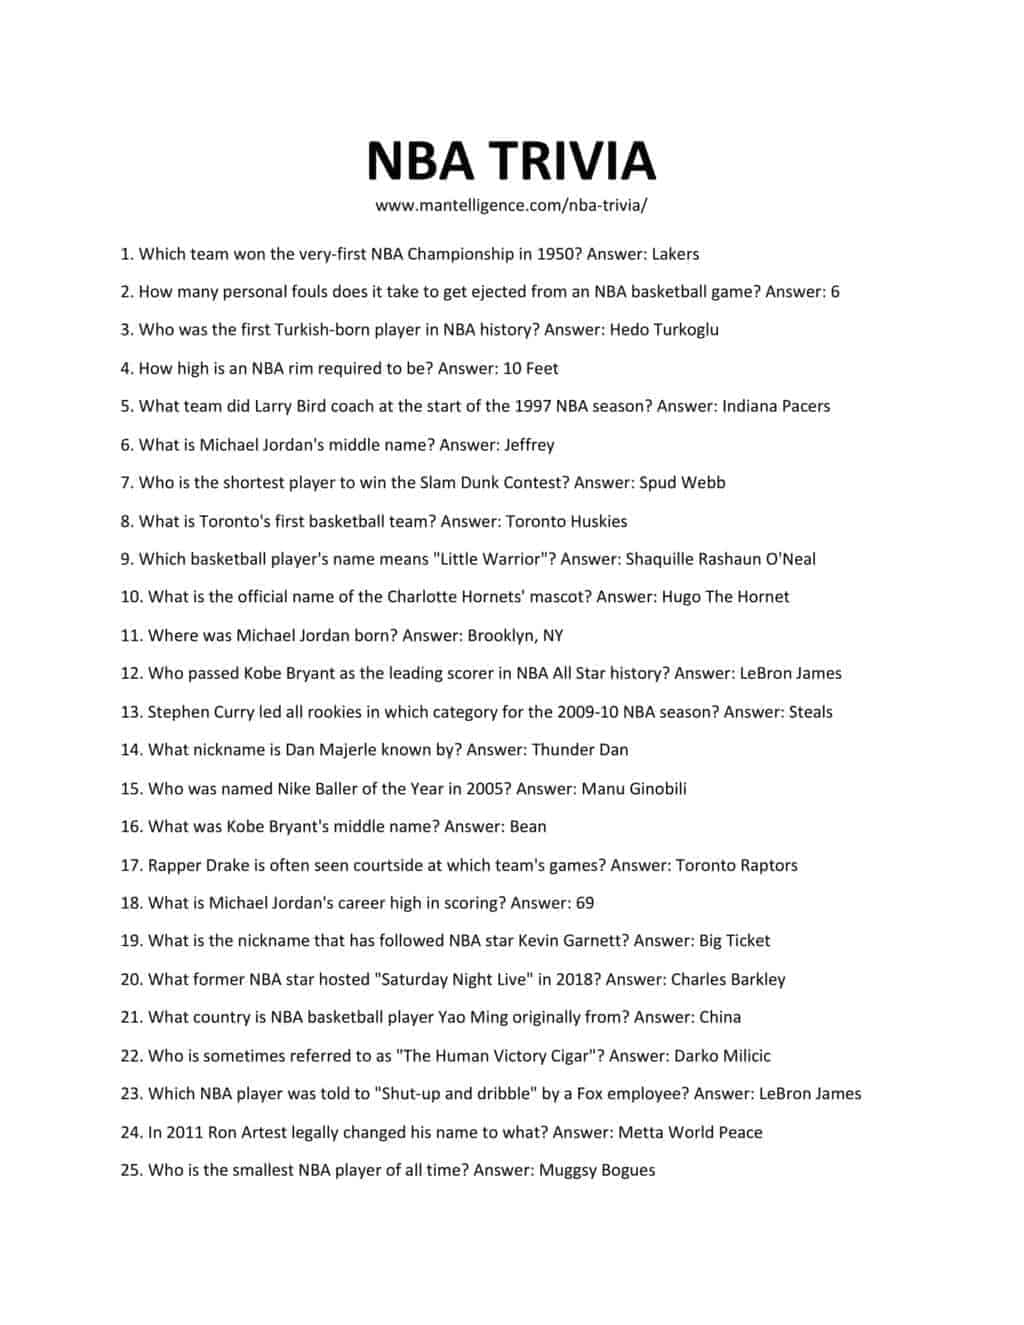 41 Best NBA Trivia Questions and Answers - Get cool facts.